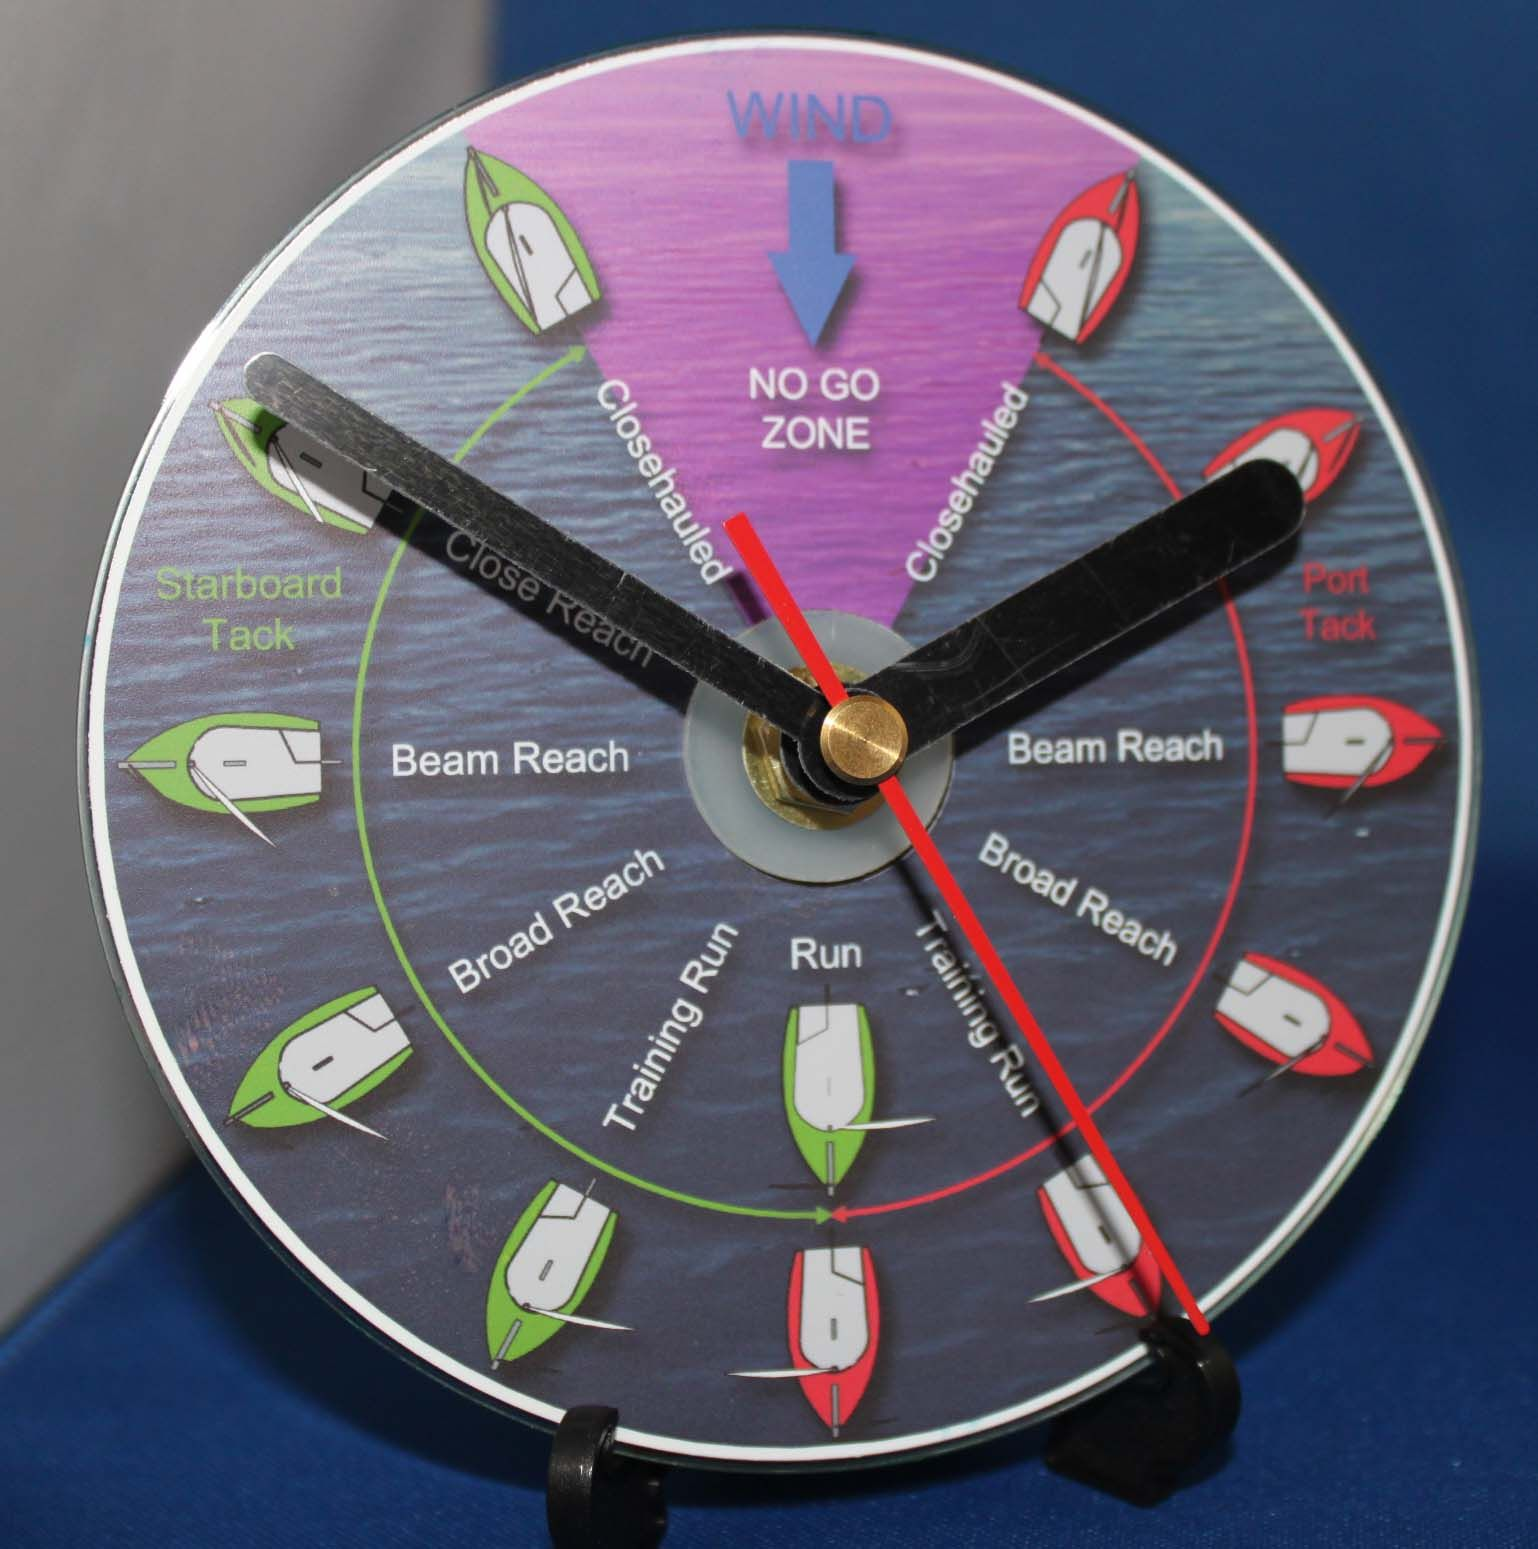 This Clock Is Based On A Sailing Training Diagram  And